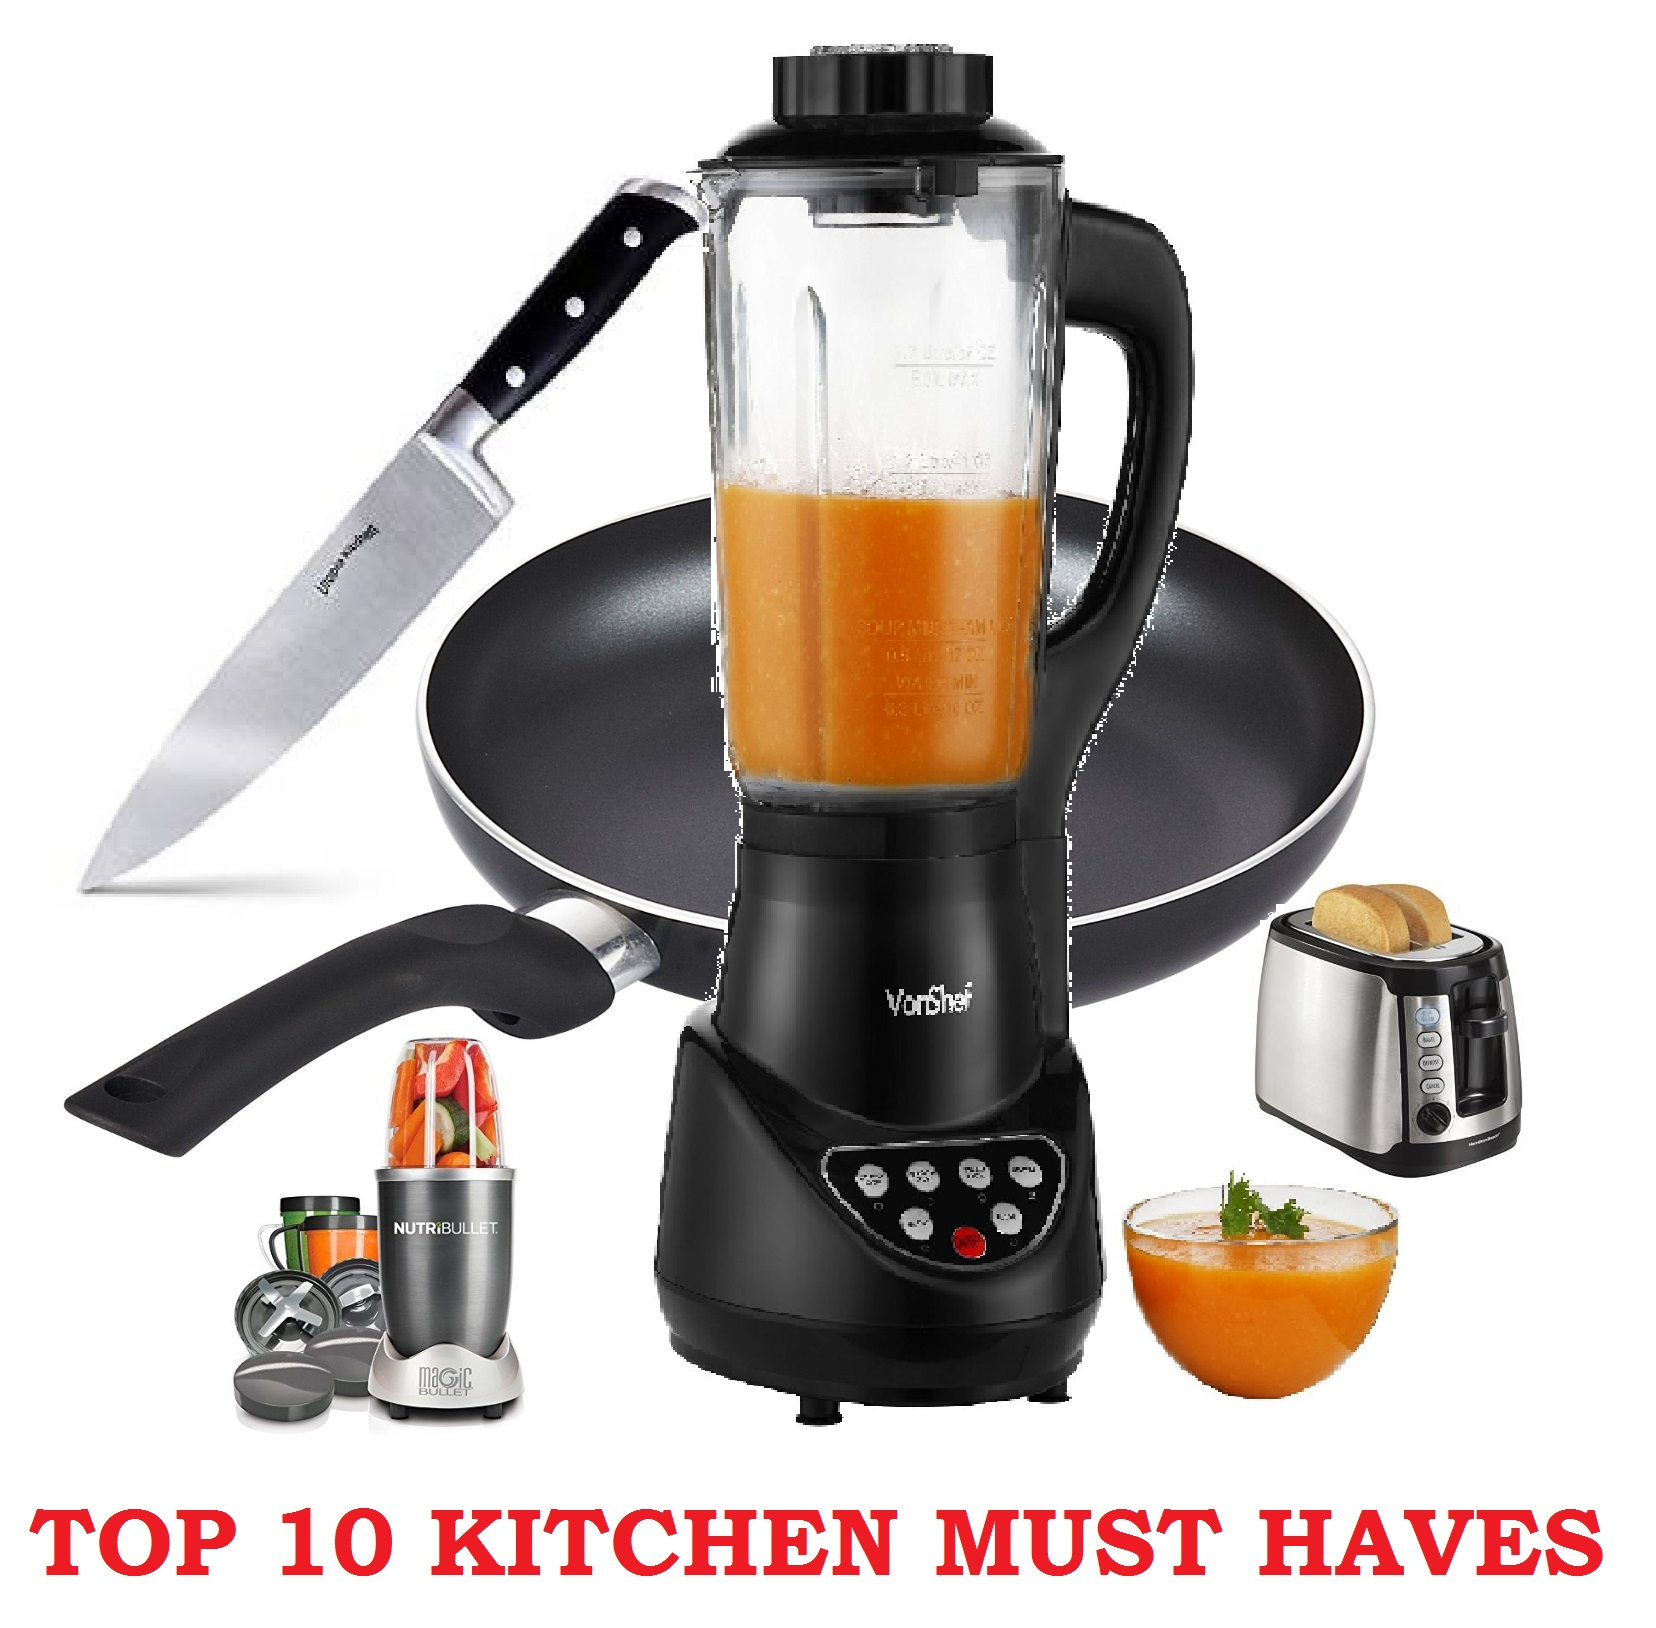 Top 10 Kitchen Must Haves  MUST HAVE items in your kitchen